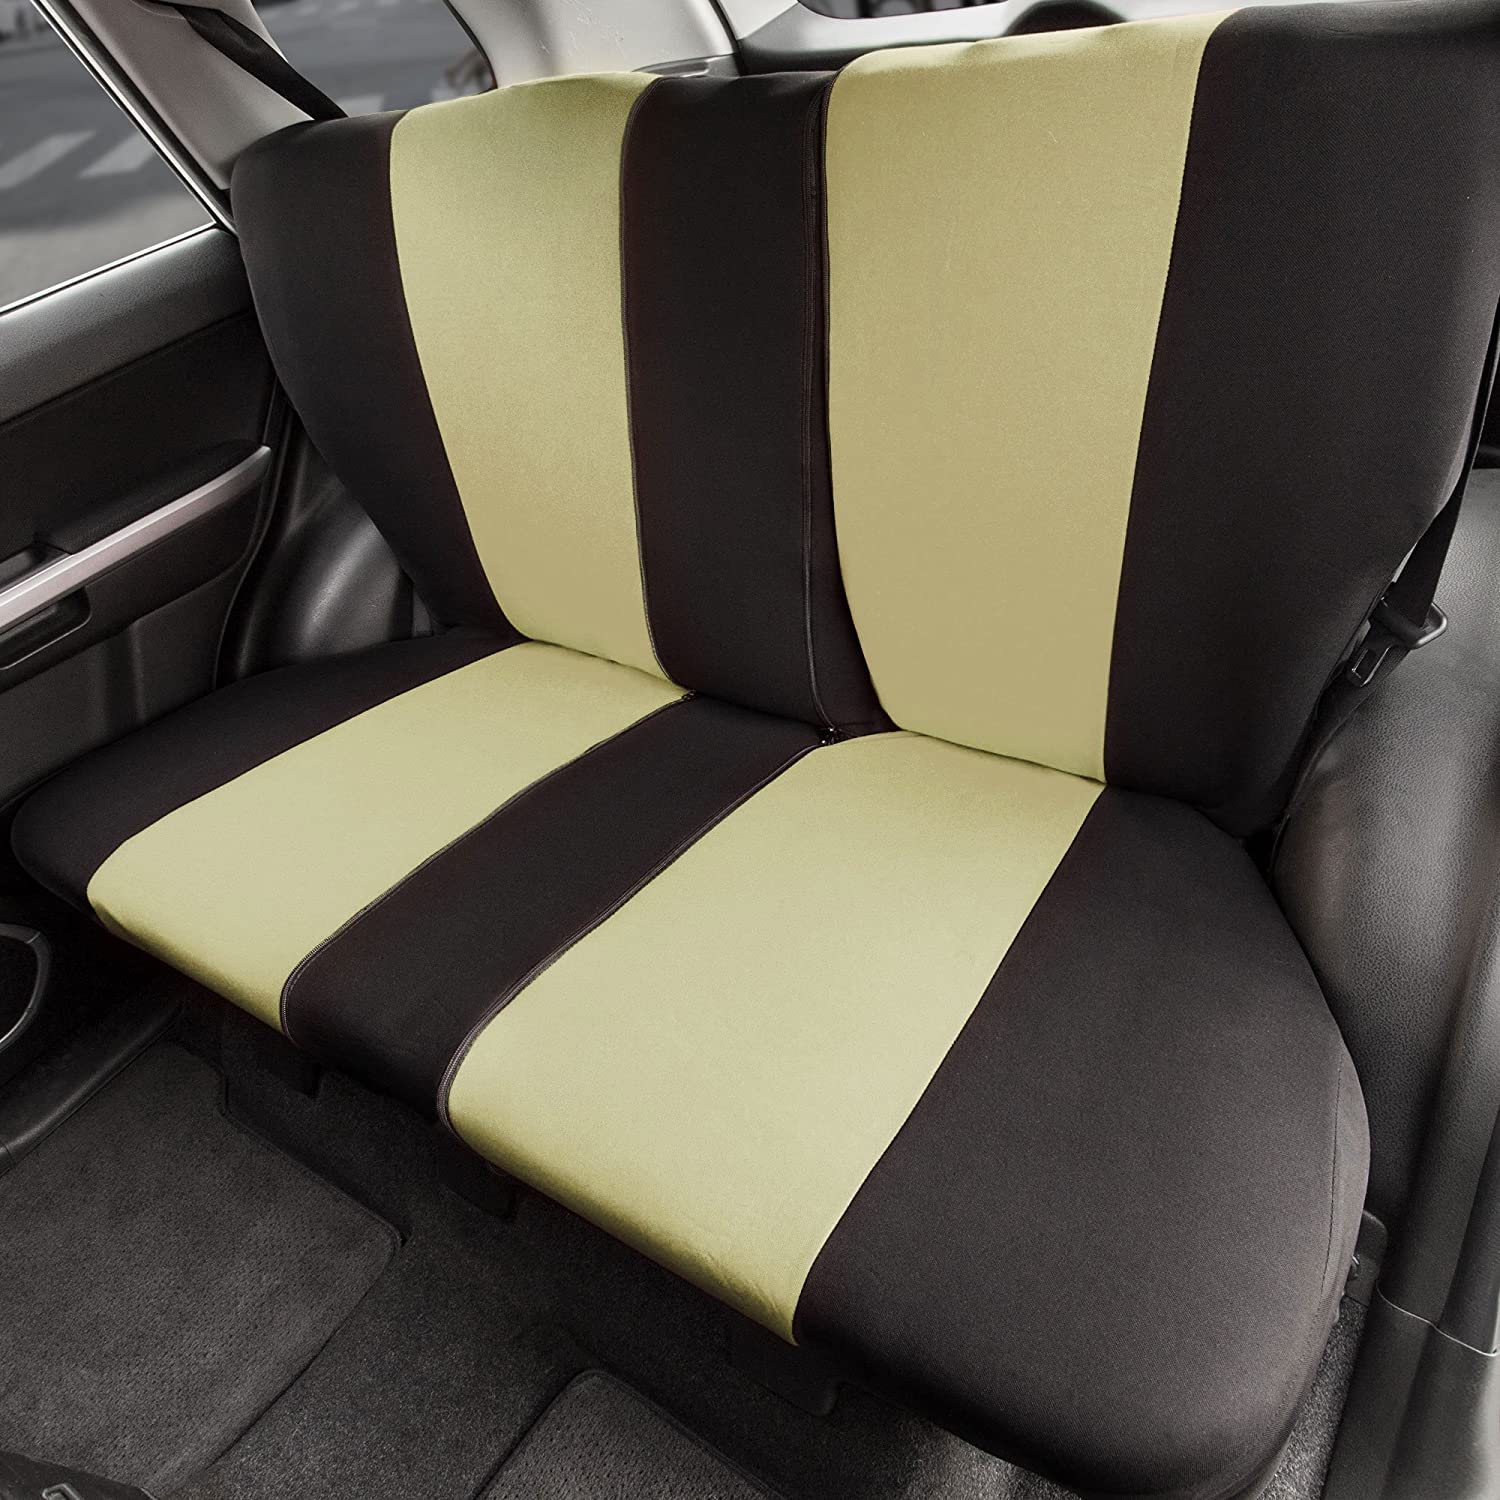 FH Max 61% OFF Group Multi-Functional Cloth Split Bench Cover Car Translated Seat Full